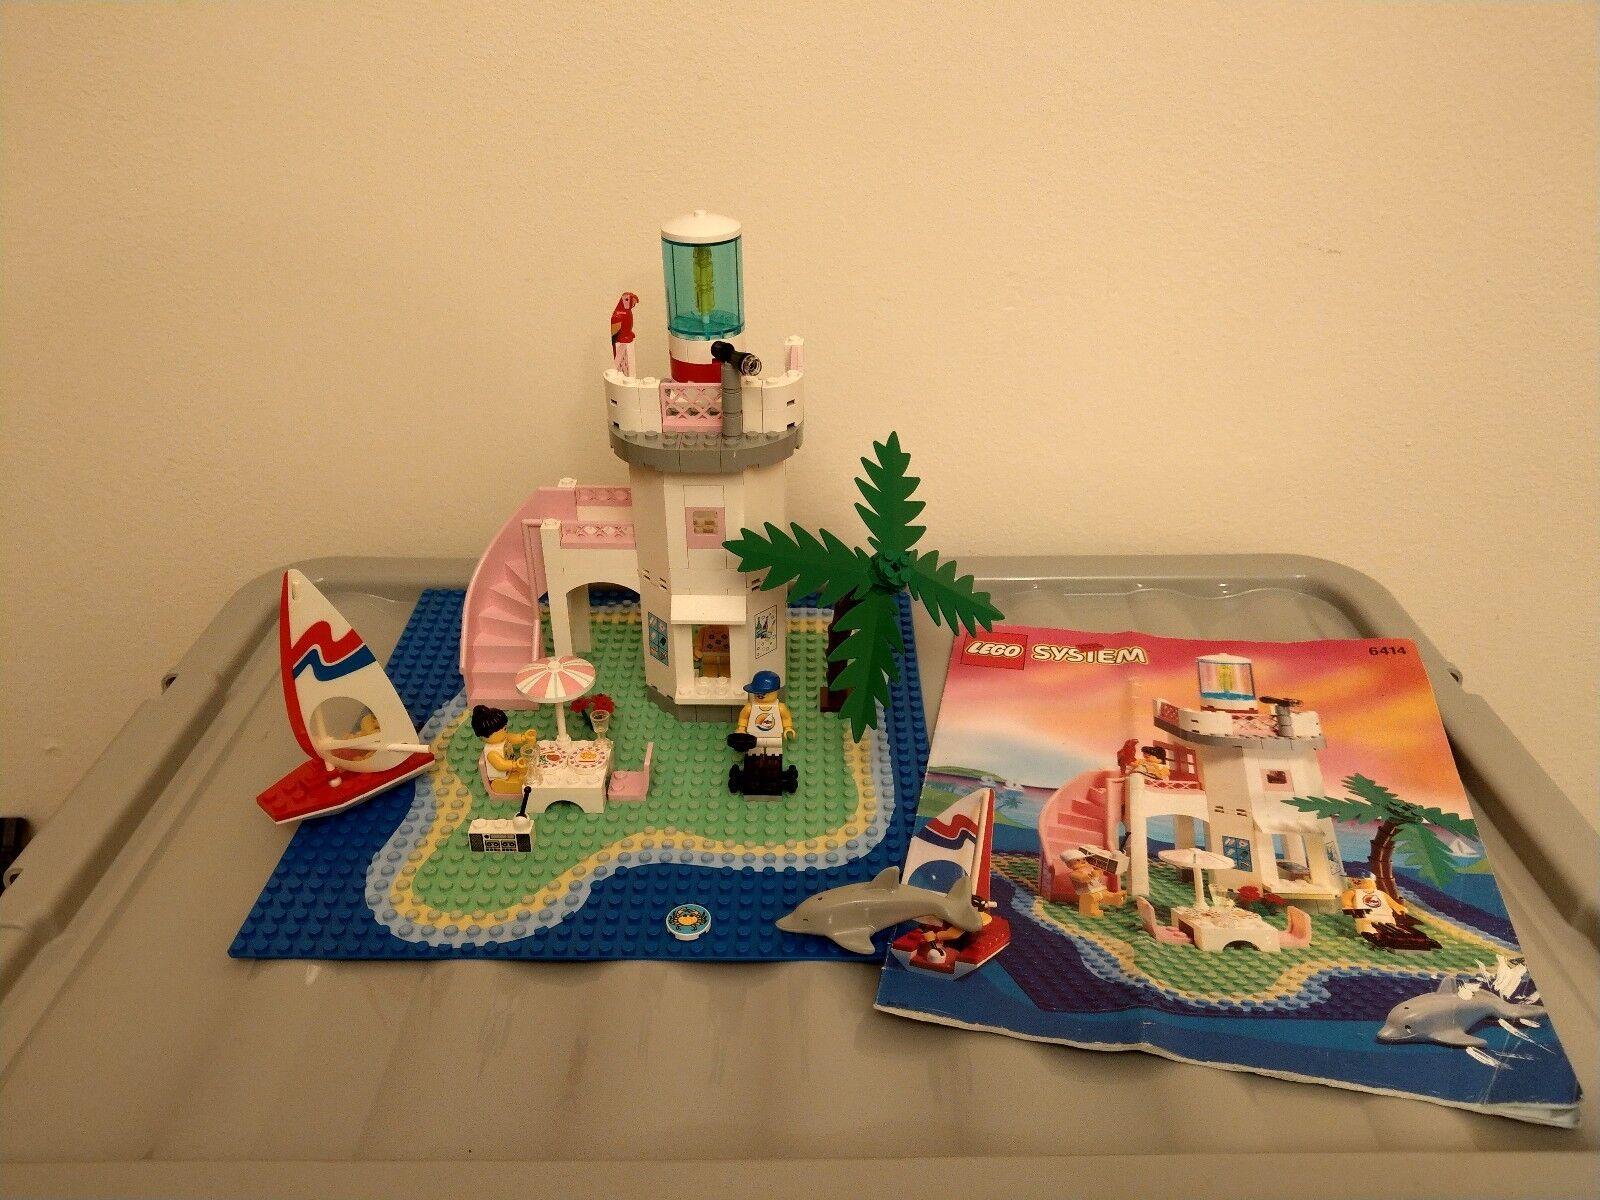 Lego 6414 Paradisa Dolphin Point - 100% complete with Instructions